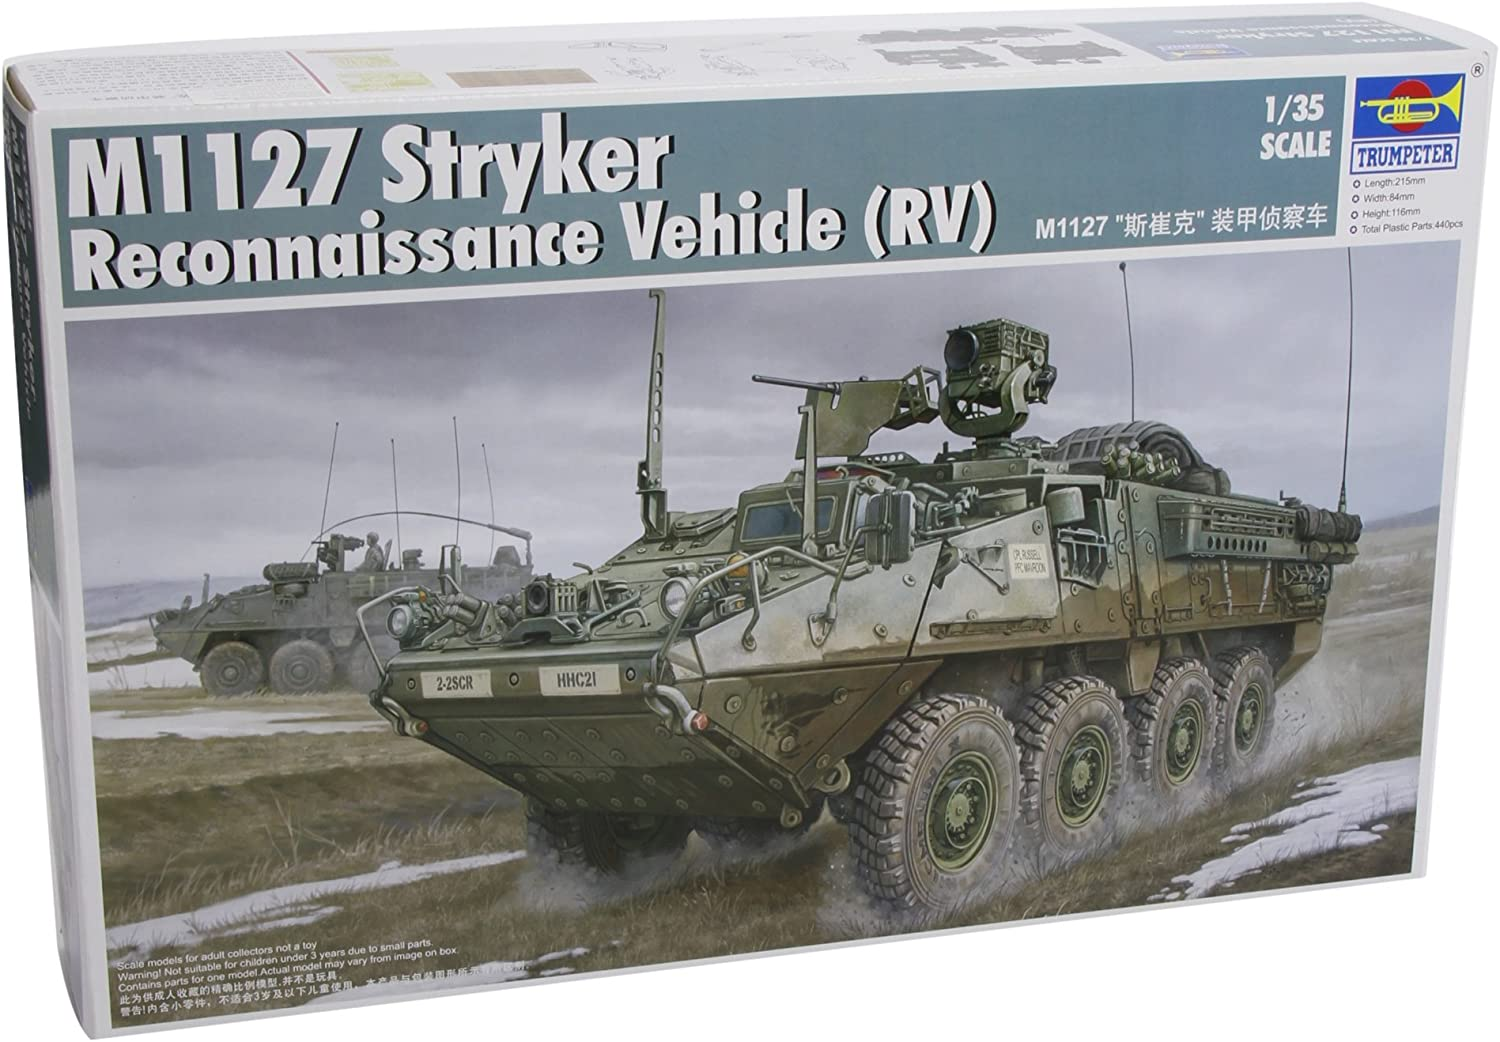 Trumpeter 1 Charlotte Mall 35 M1127 Stryker 40% OFF Cheap Sale RV Recon Vehicle